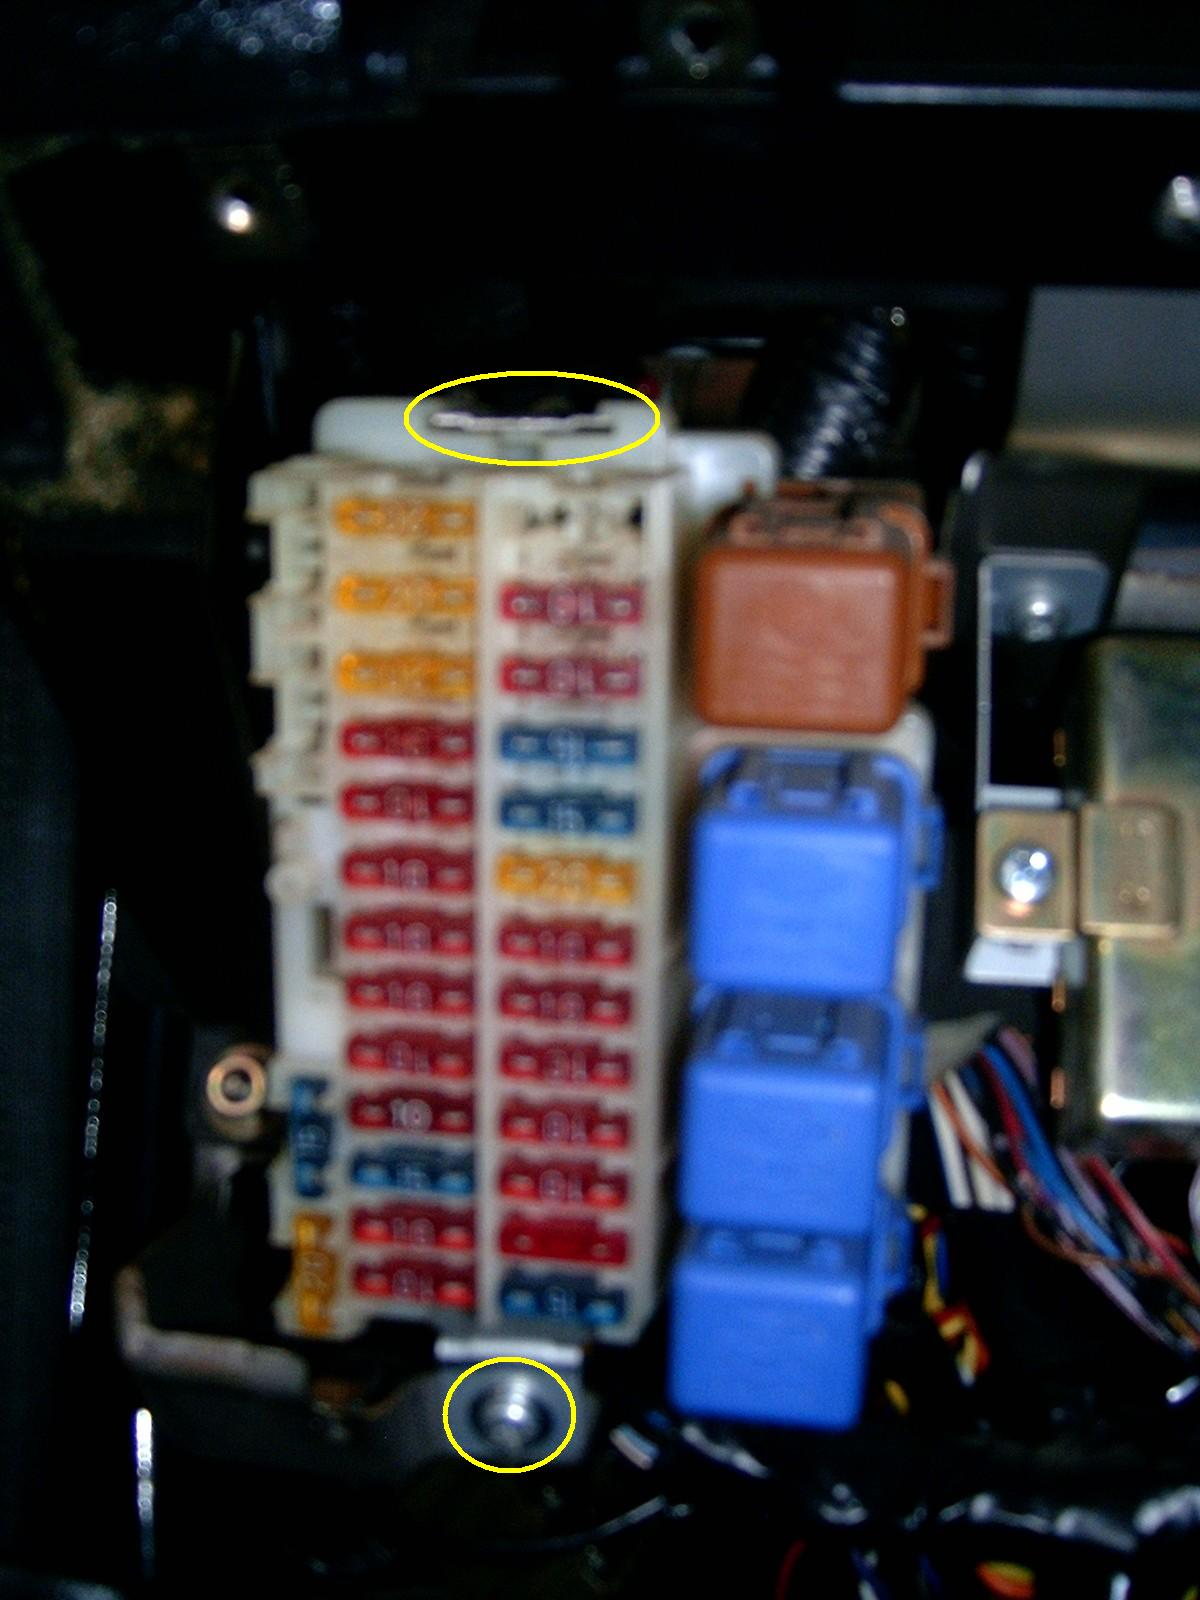 2006 nissan maxima fuse box wiring data schematic rh 19 bw in austin de 2006 nissan maxima fuse box diagram under the hood 2006 nissan maxima 3.5 fuse box diagram